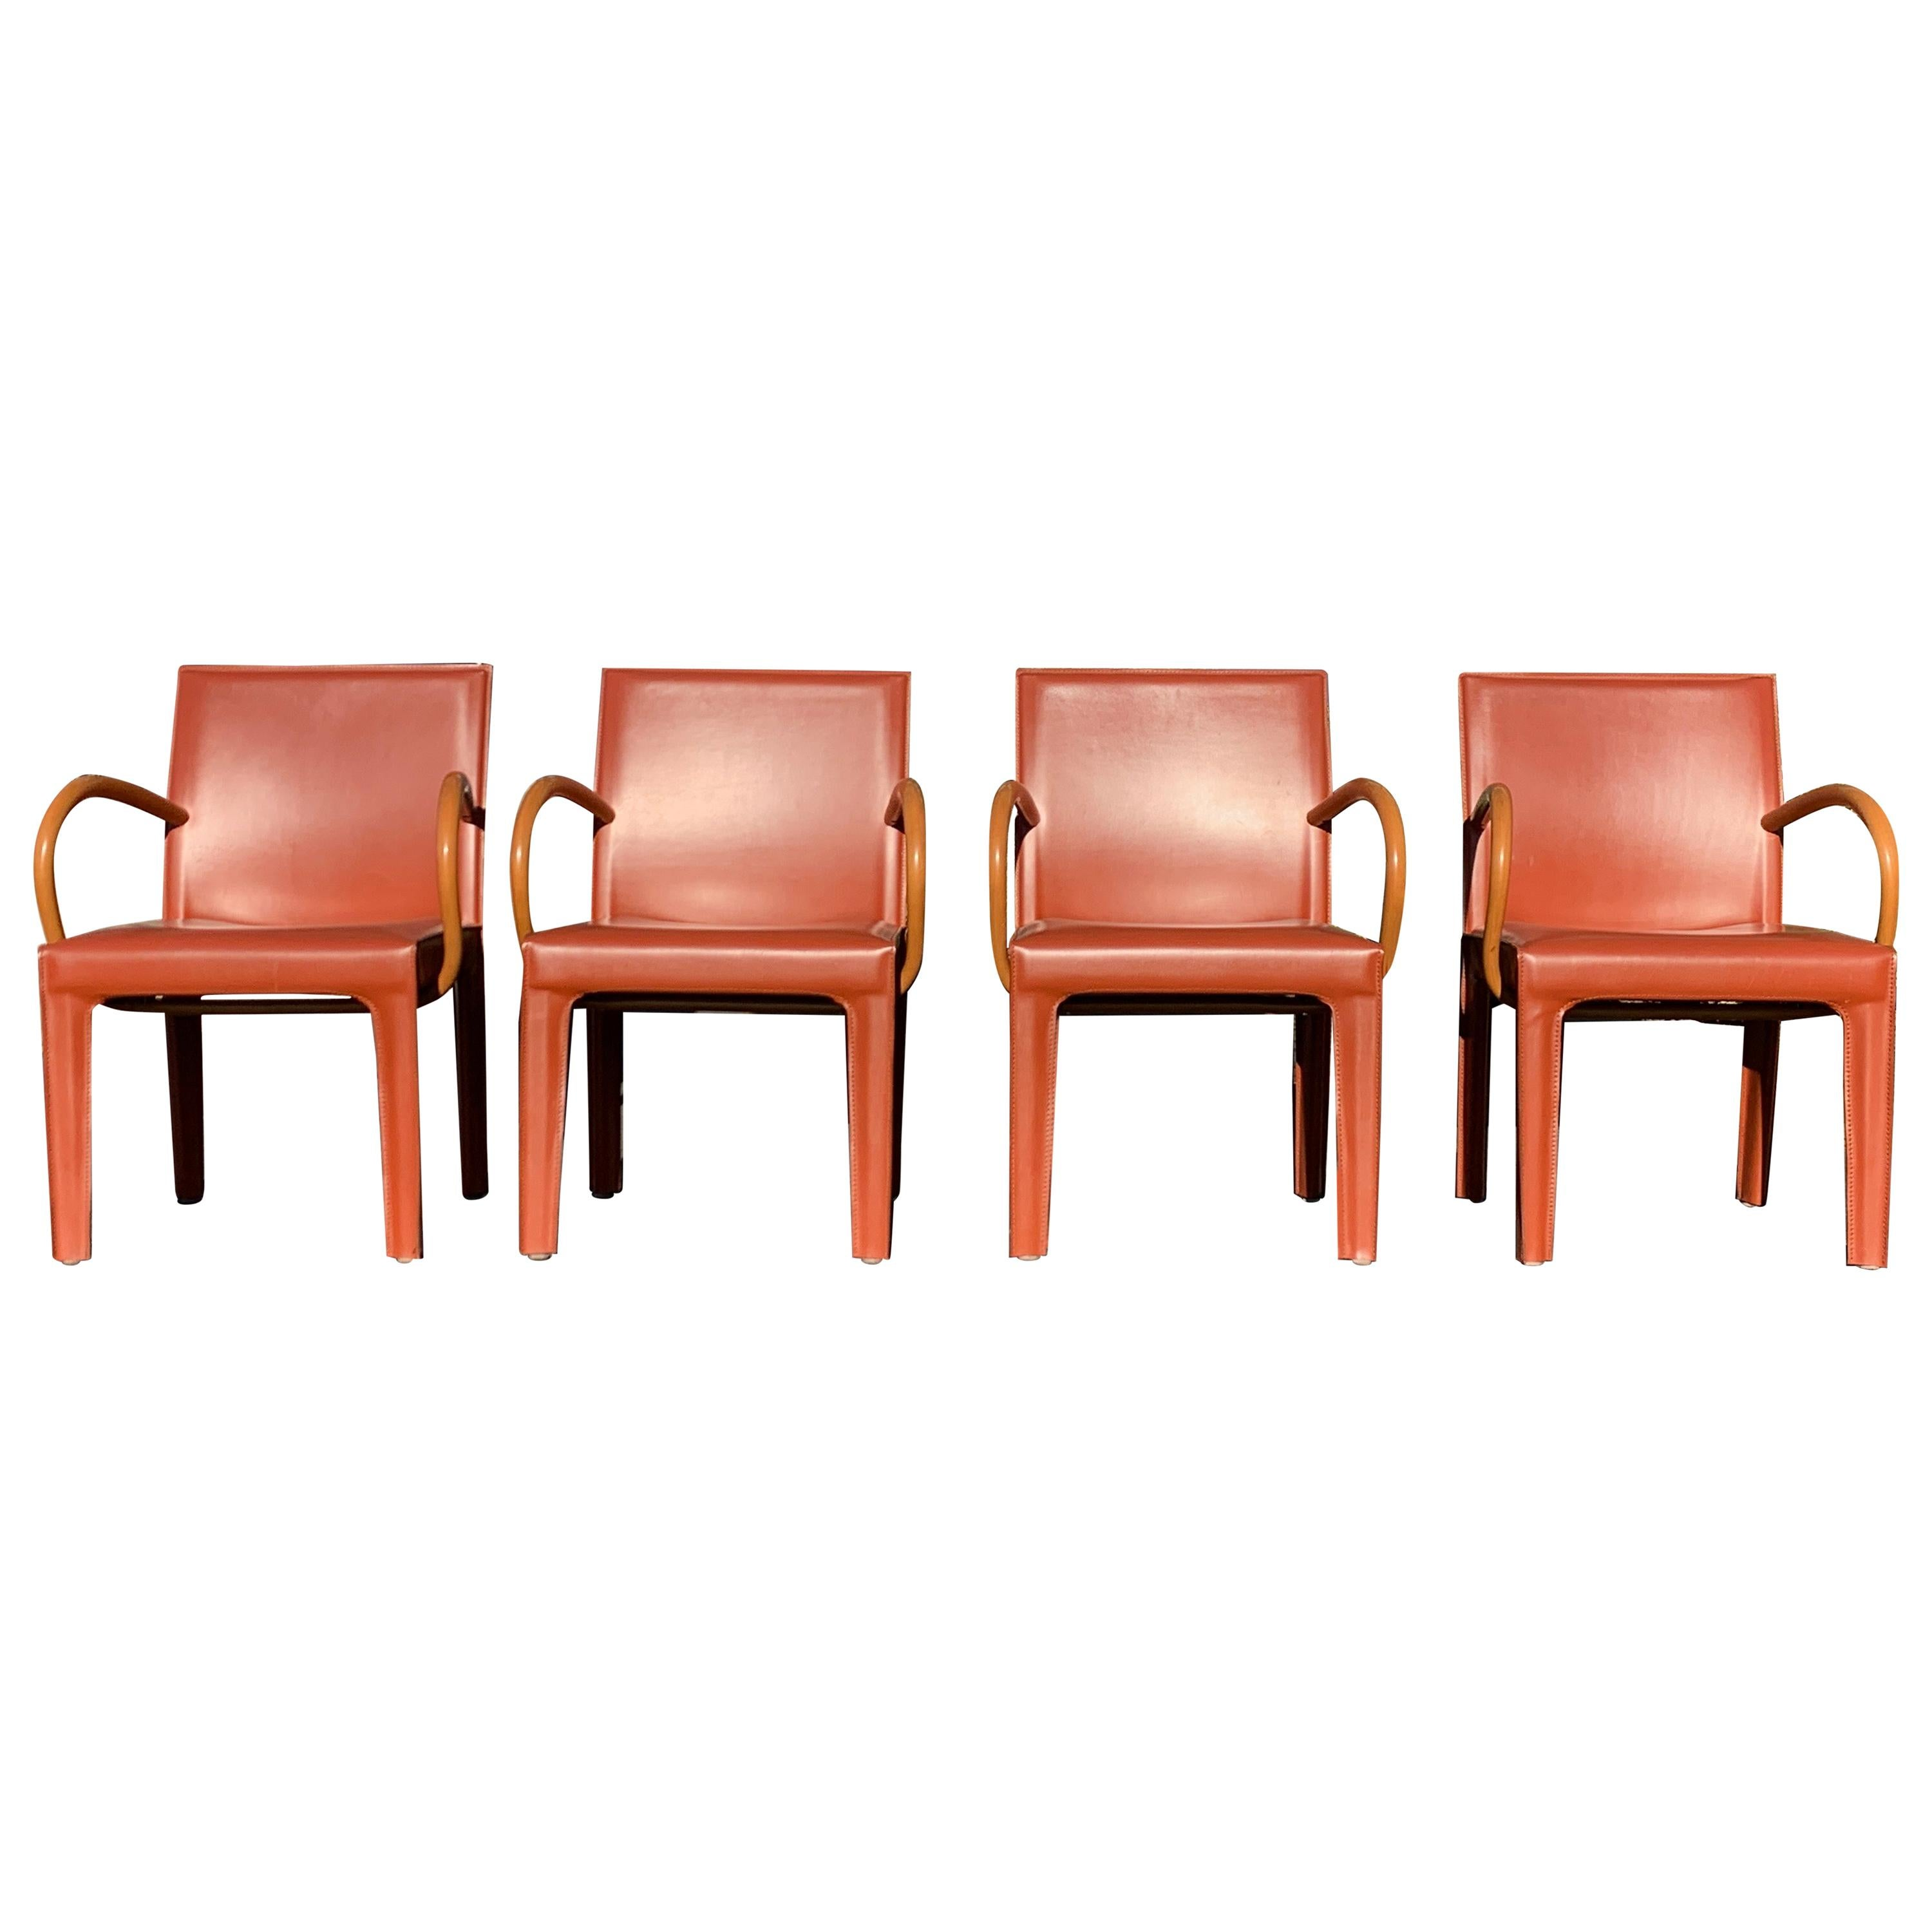 Set of 4 Burgundy Leather Dining Chairs by Arper